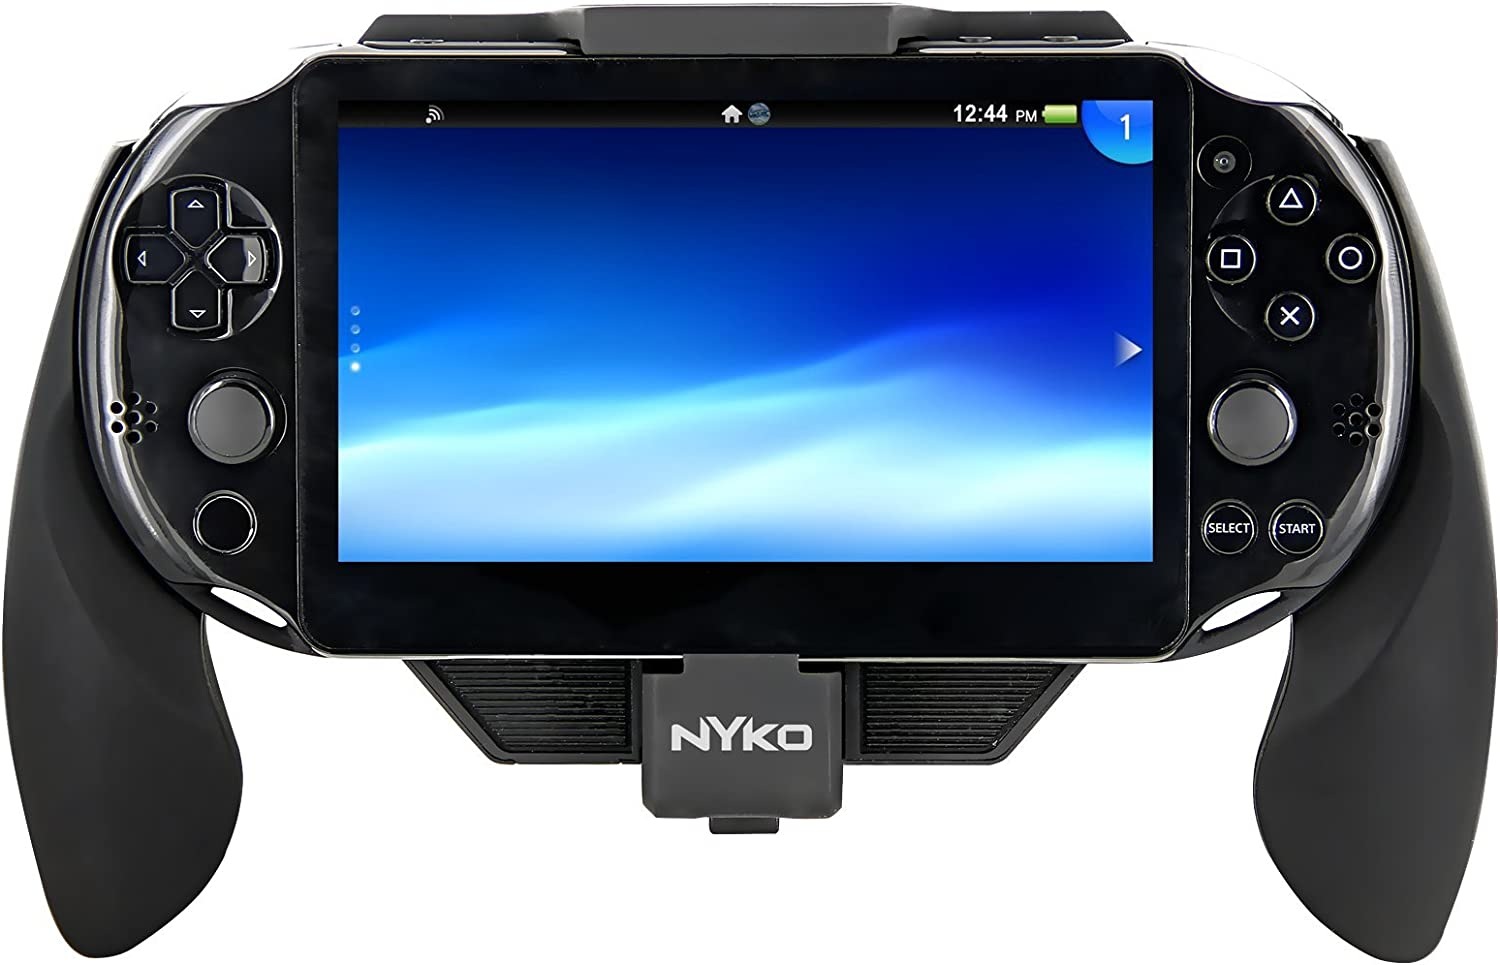 Amazon.com: Nyko Power Grip for PS Vita (PCH-2000): Video Games